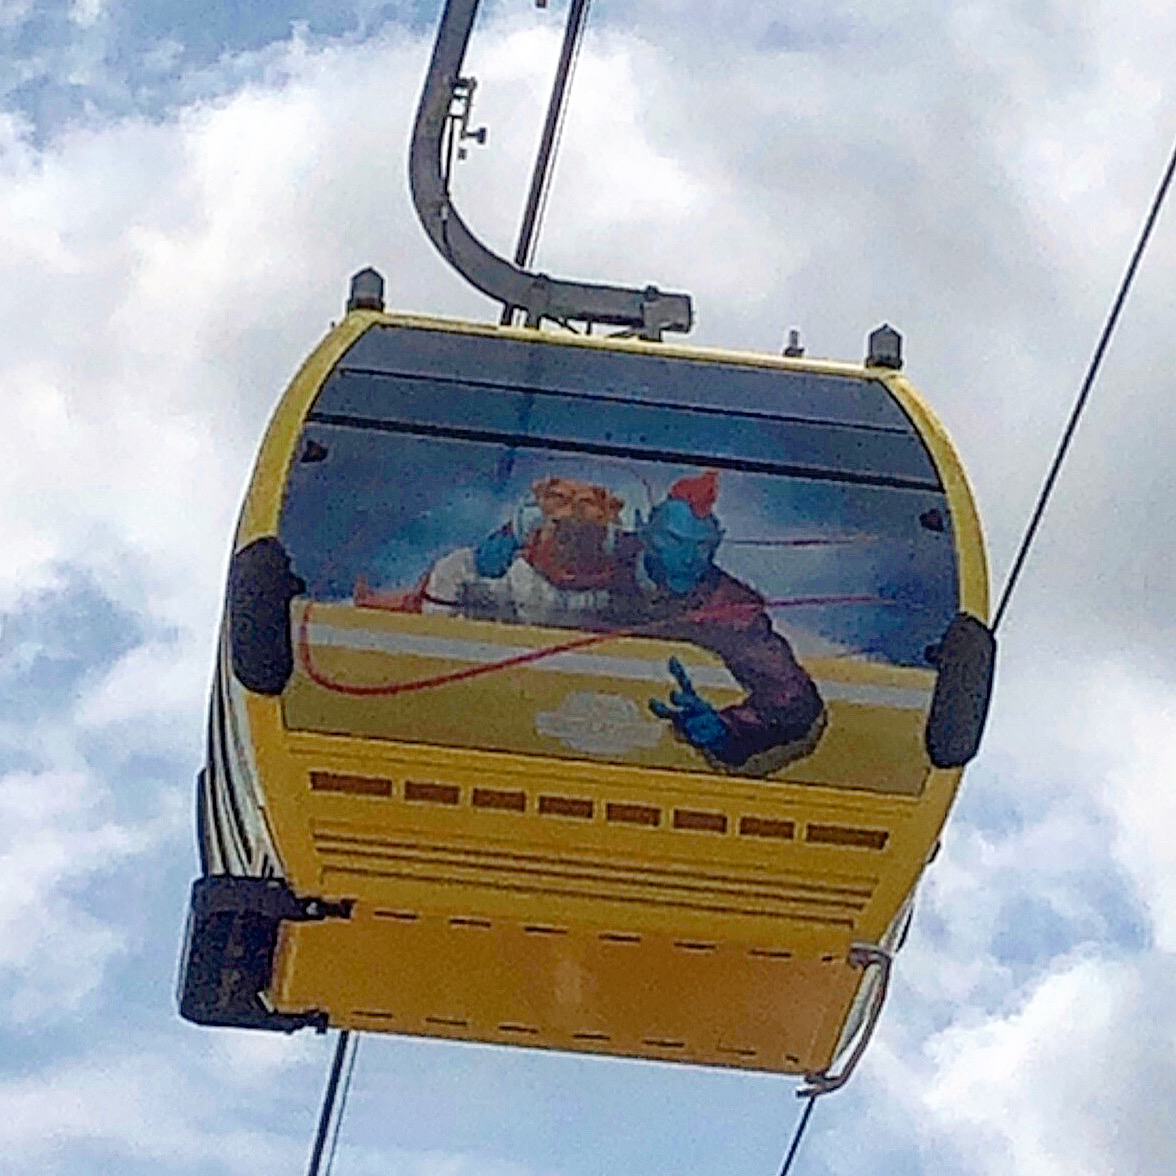 See the Disney Skyliner Gondolas Uncovered with Characters on them! 2